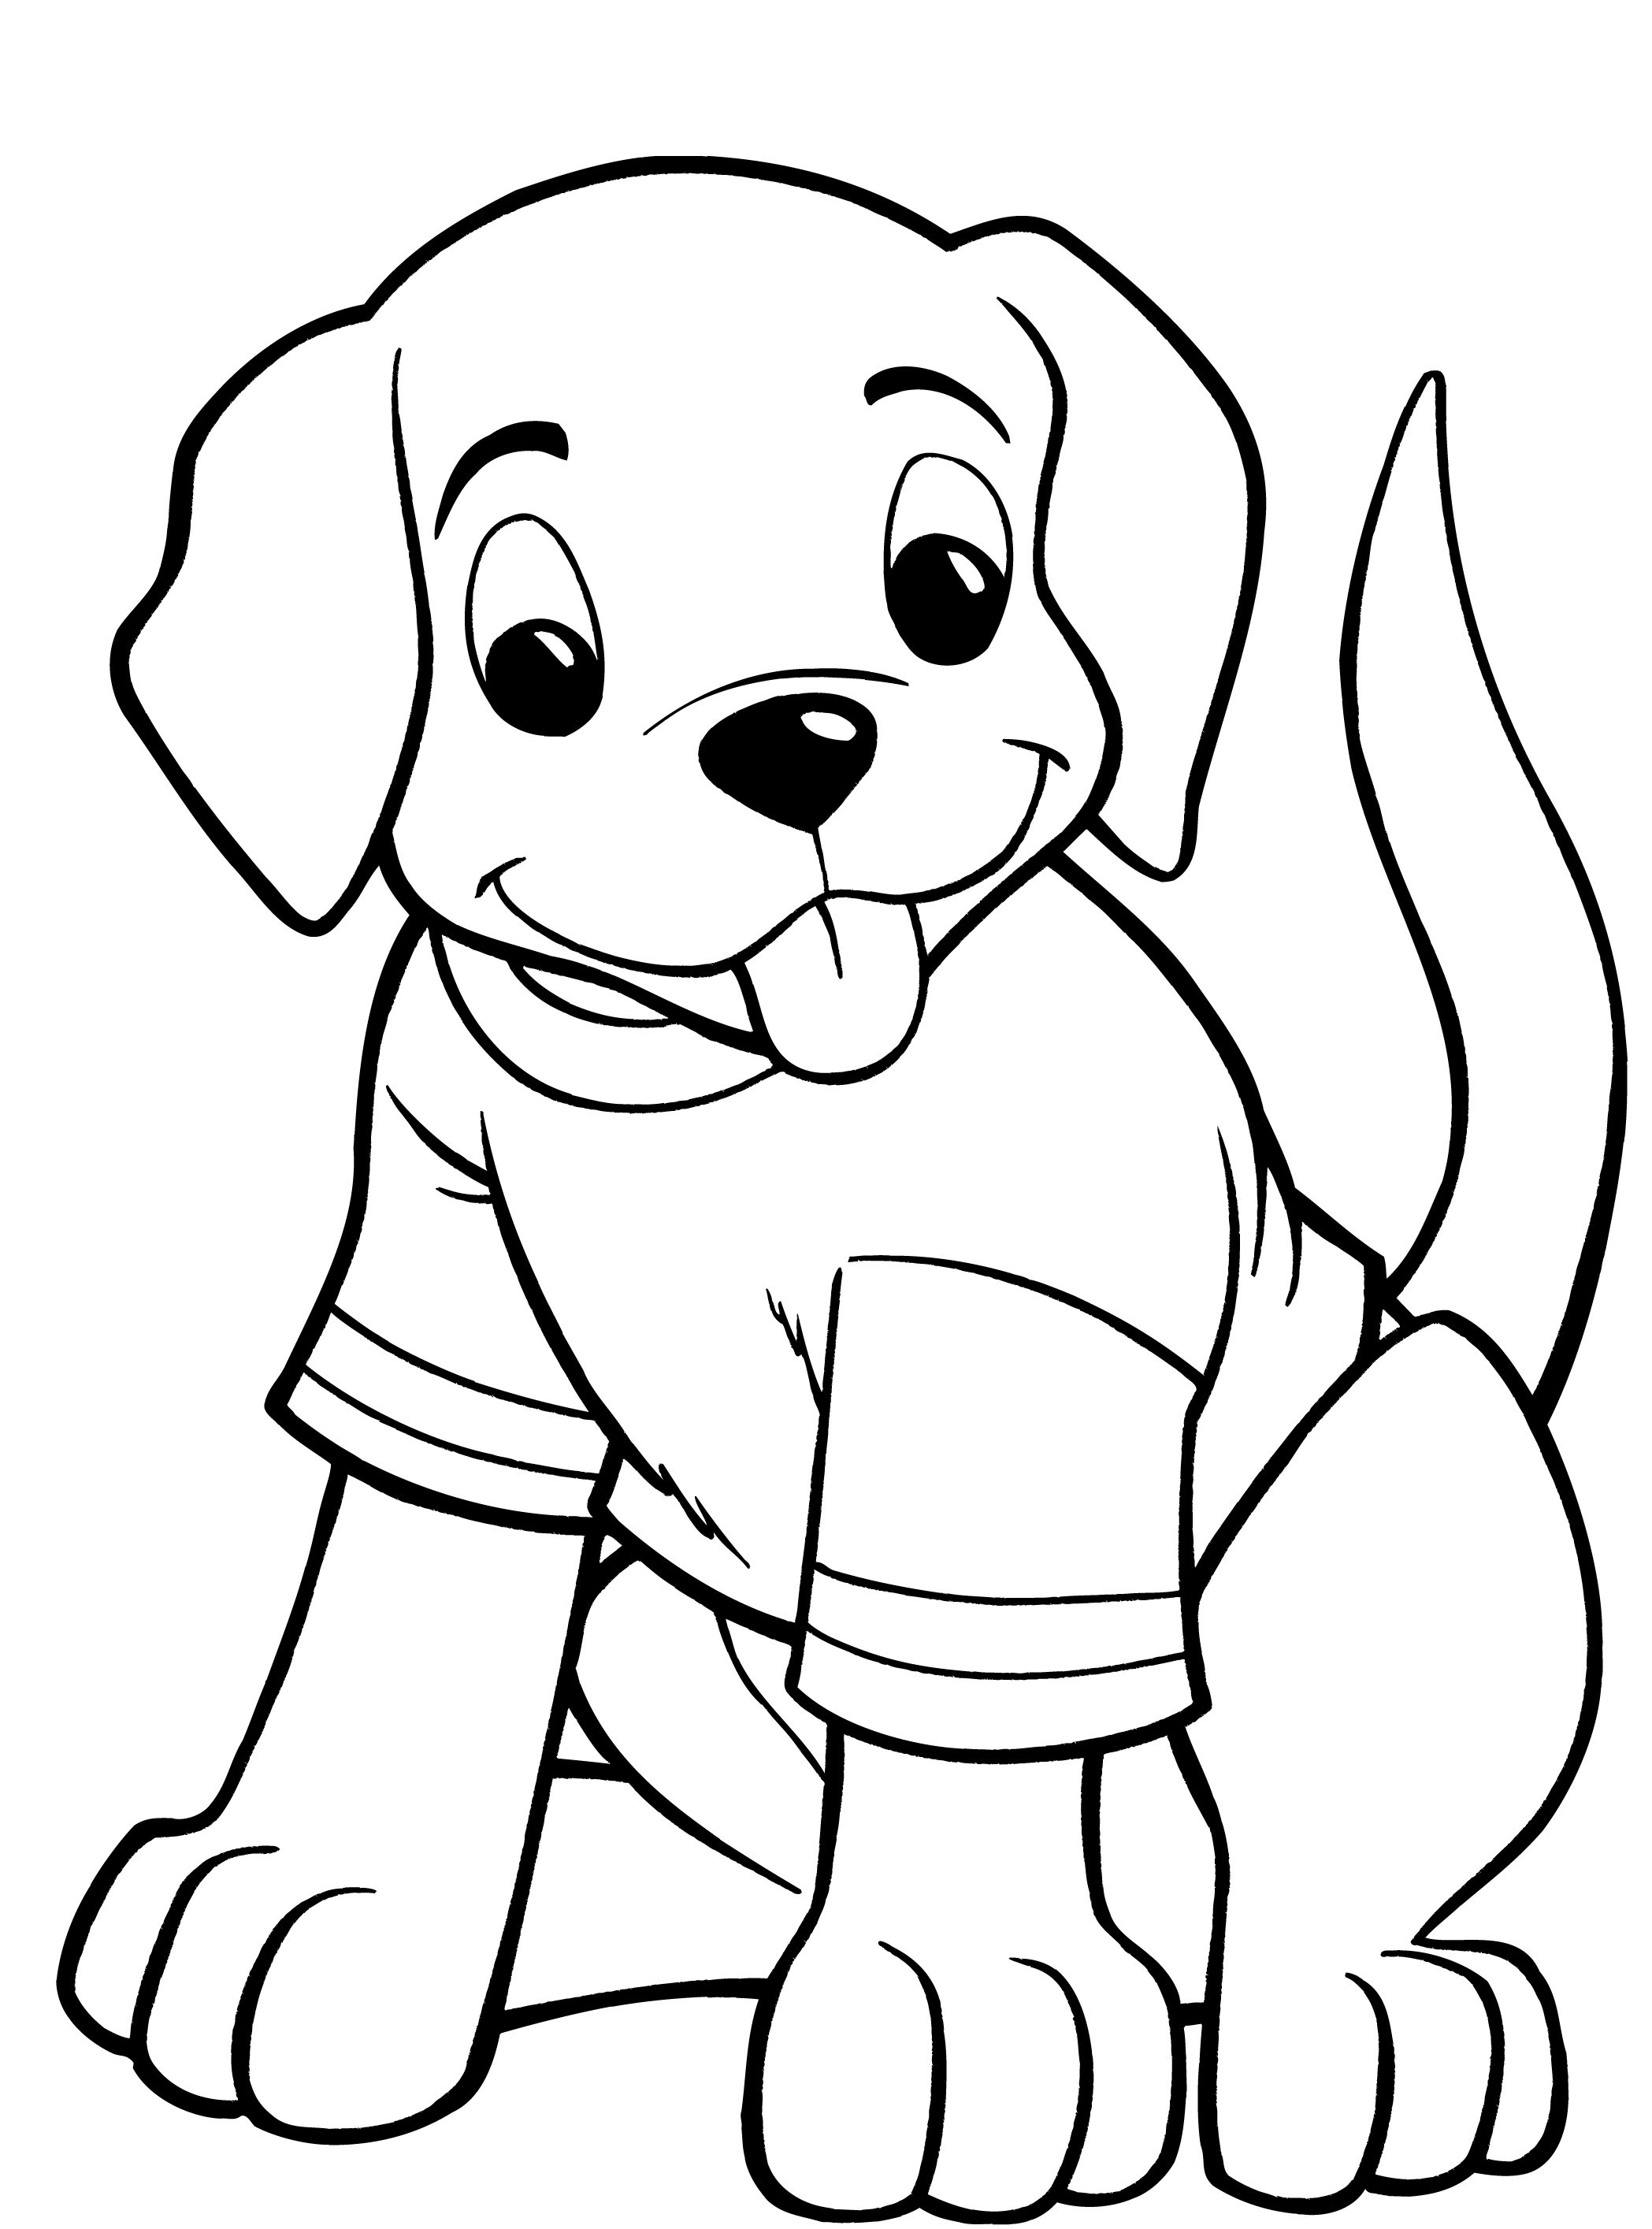 beagle coloring pages - dog coloring pages